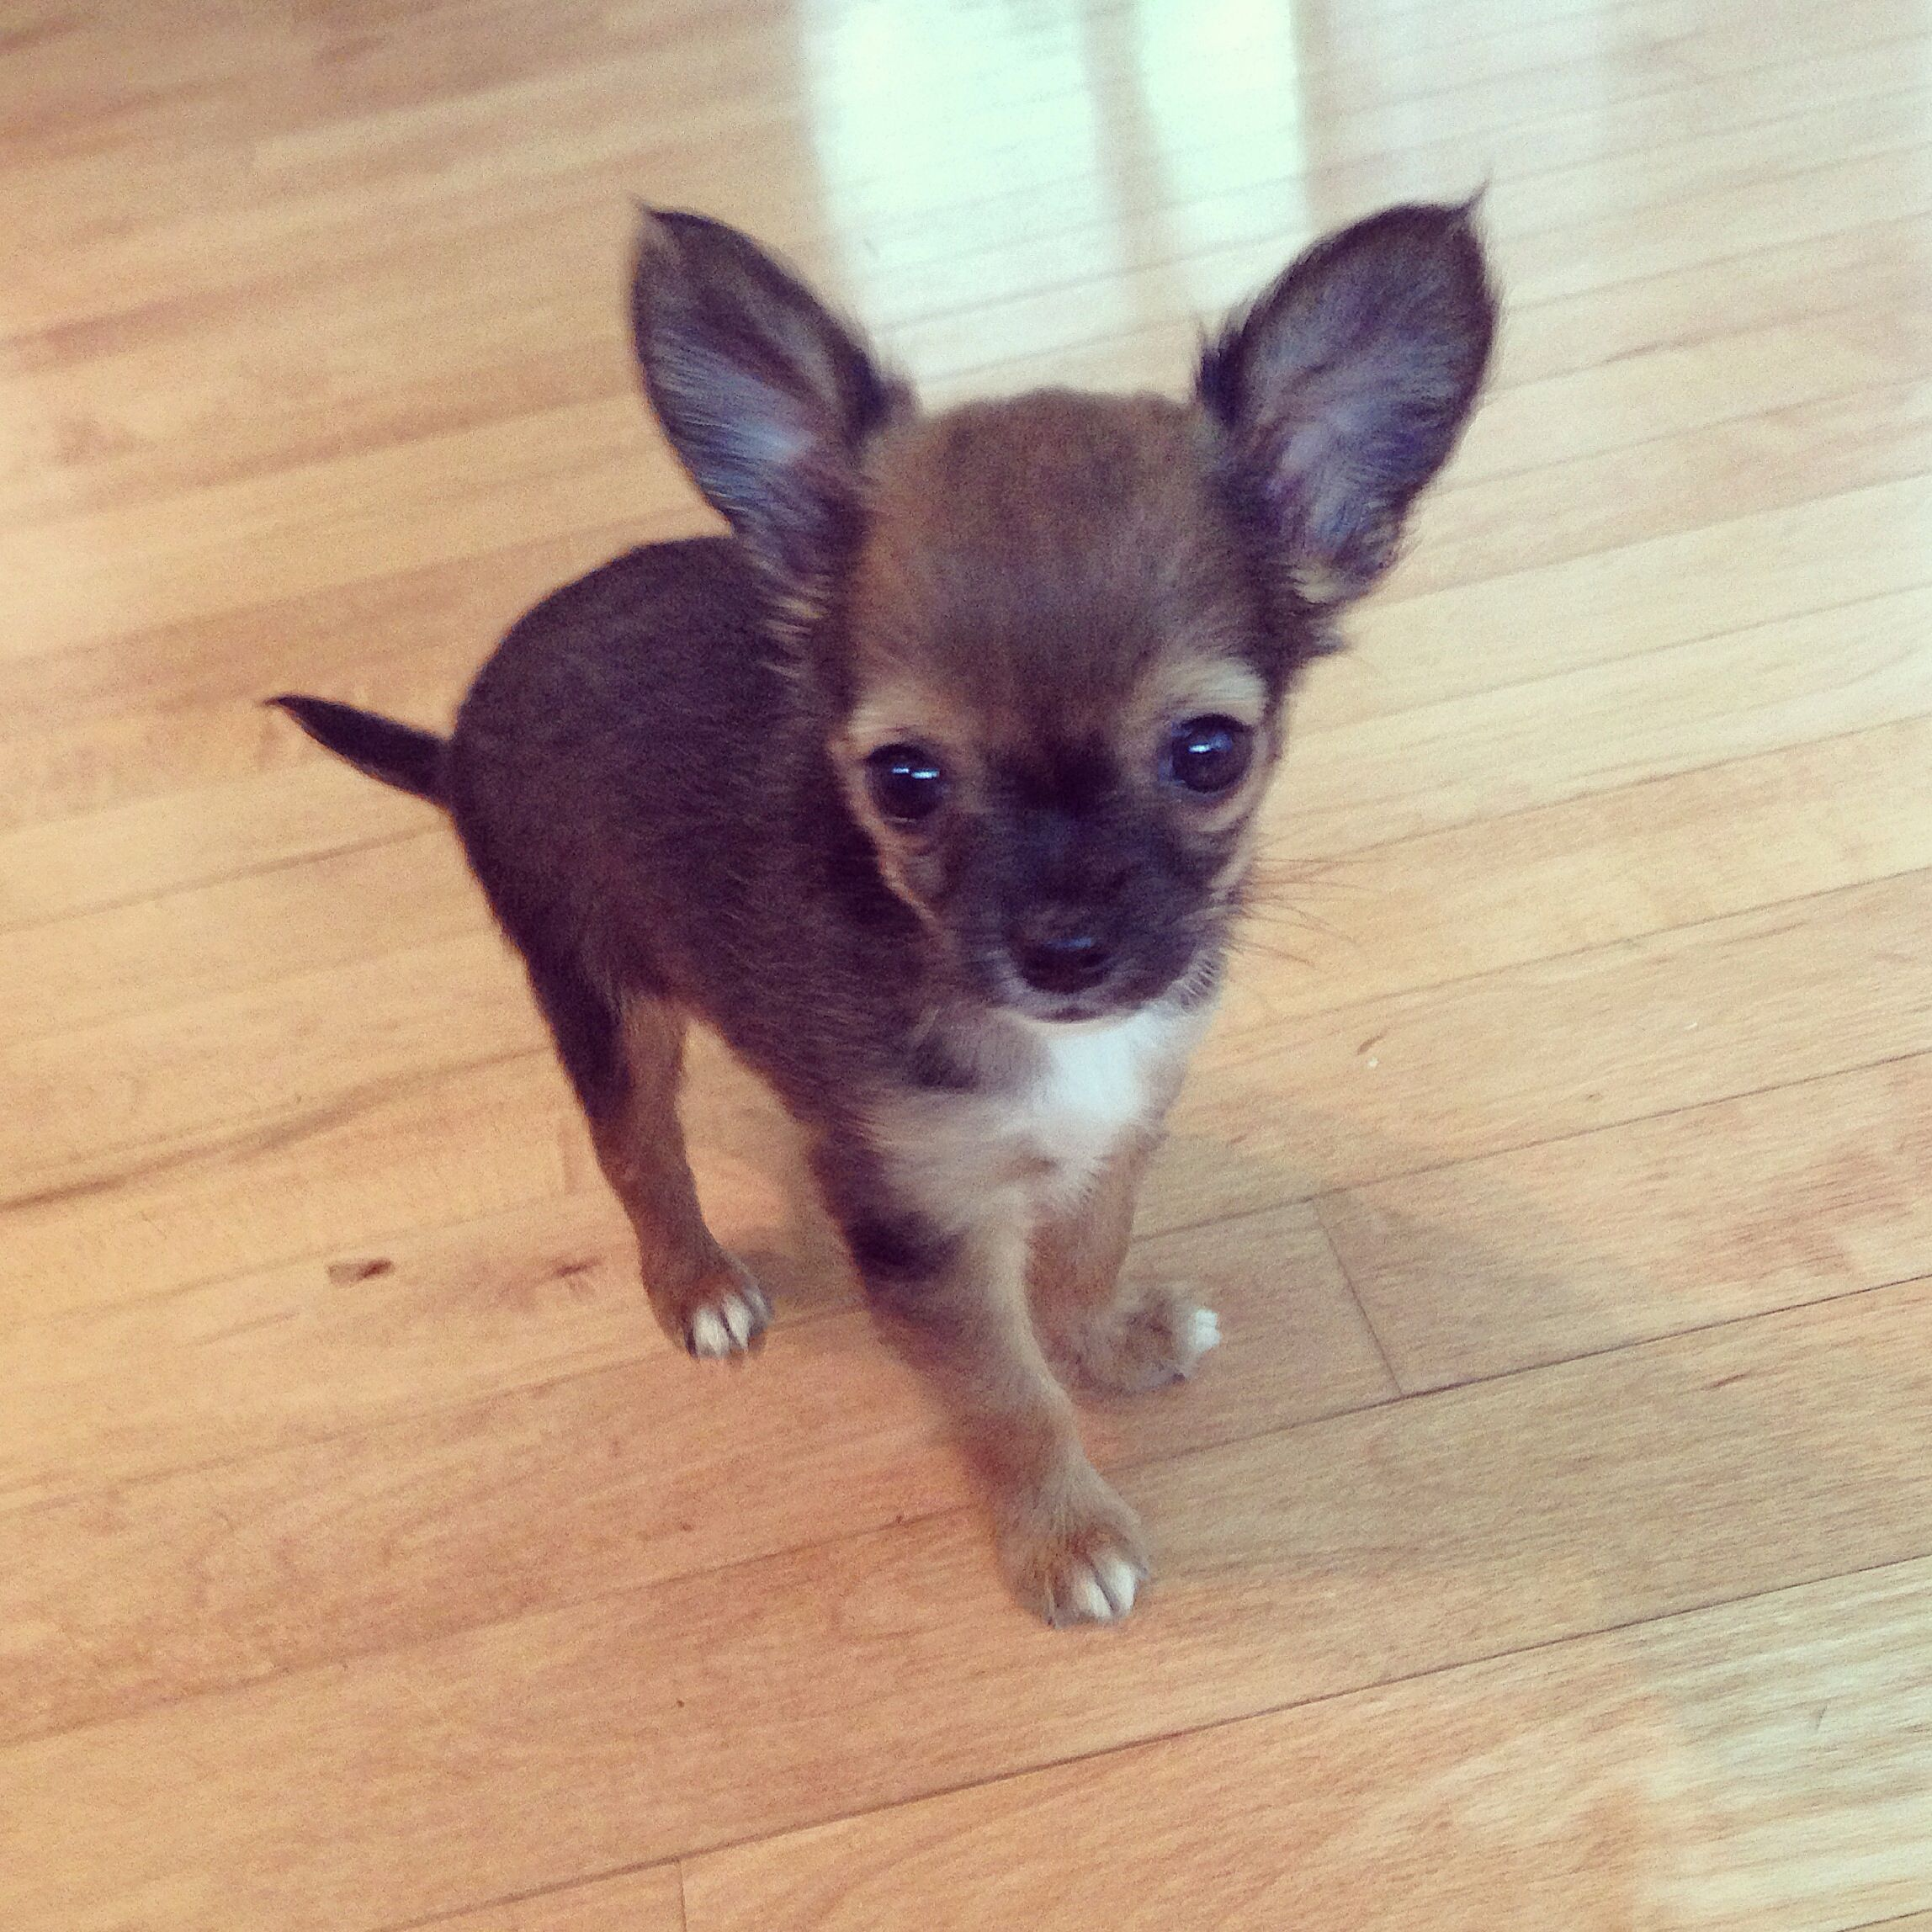 Honey Bee My Long Haired Chihuahua Puppy 8 Weeks Old And Cute As A